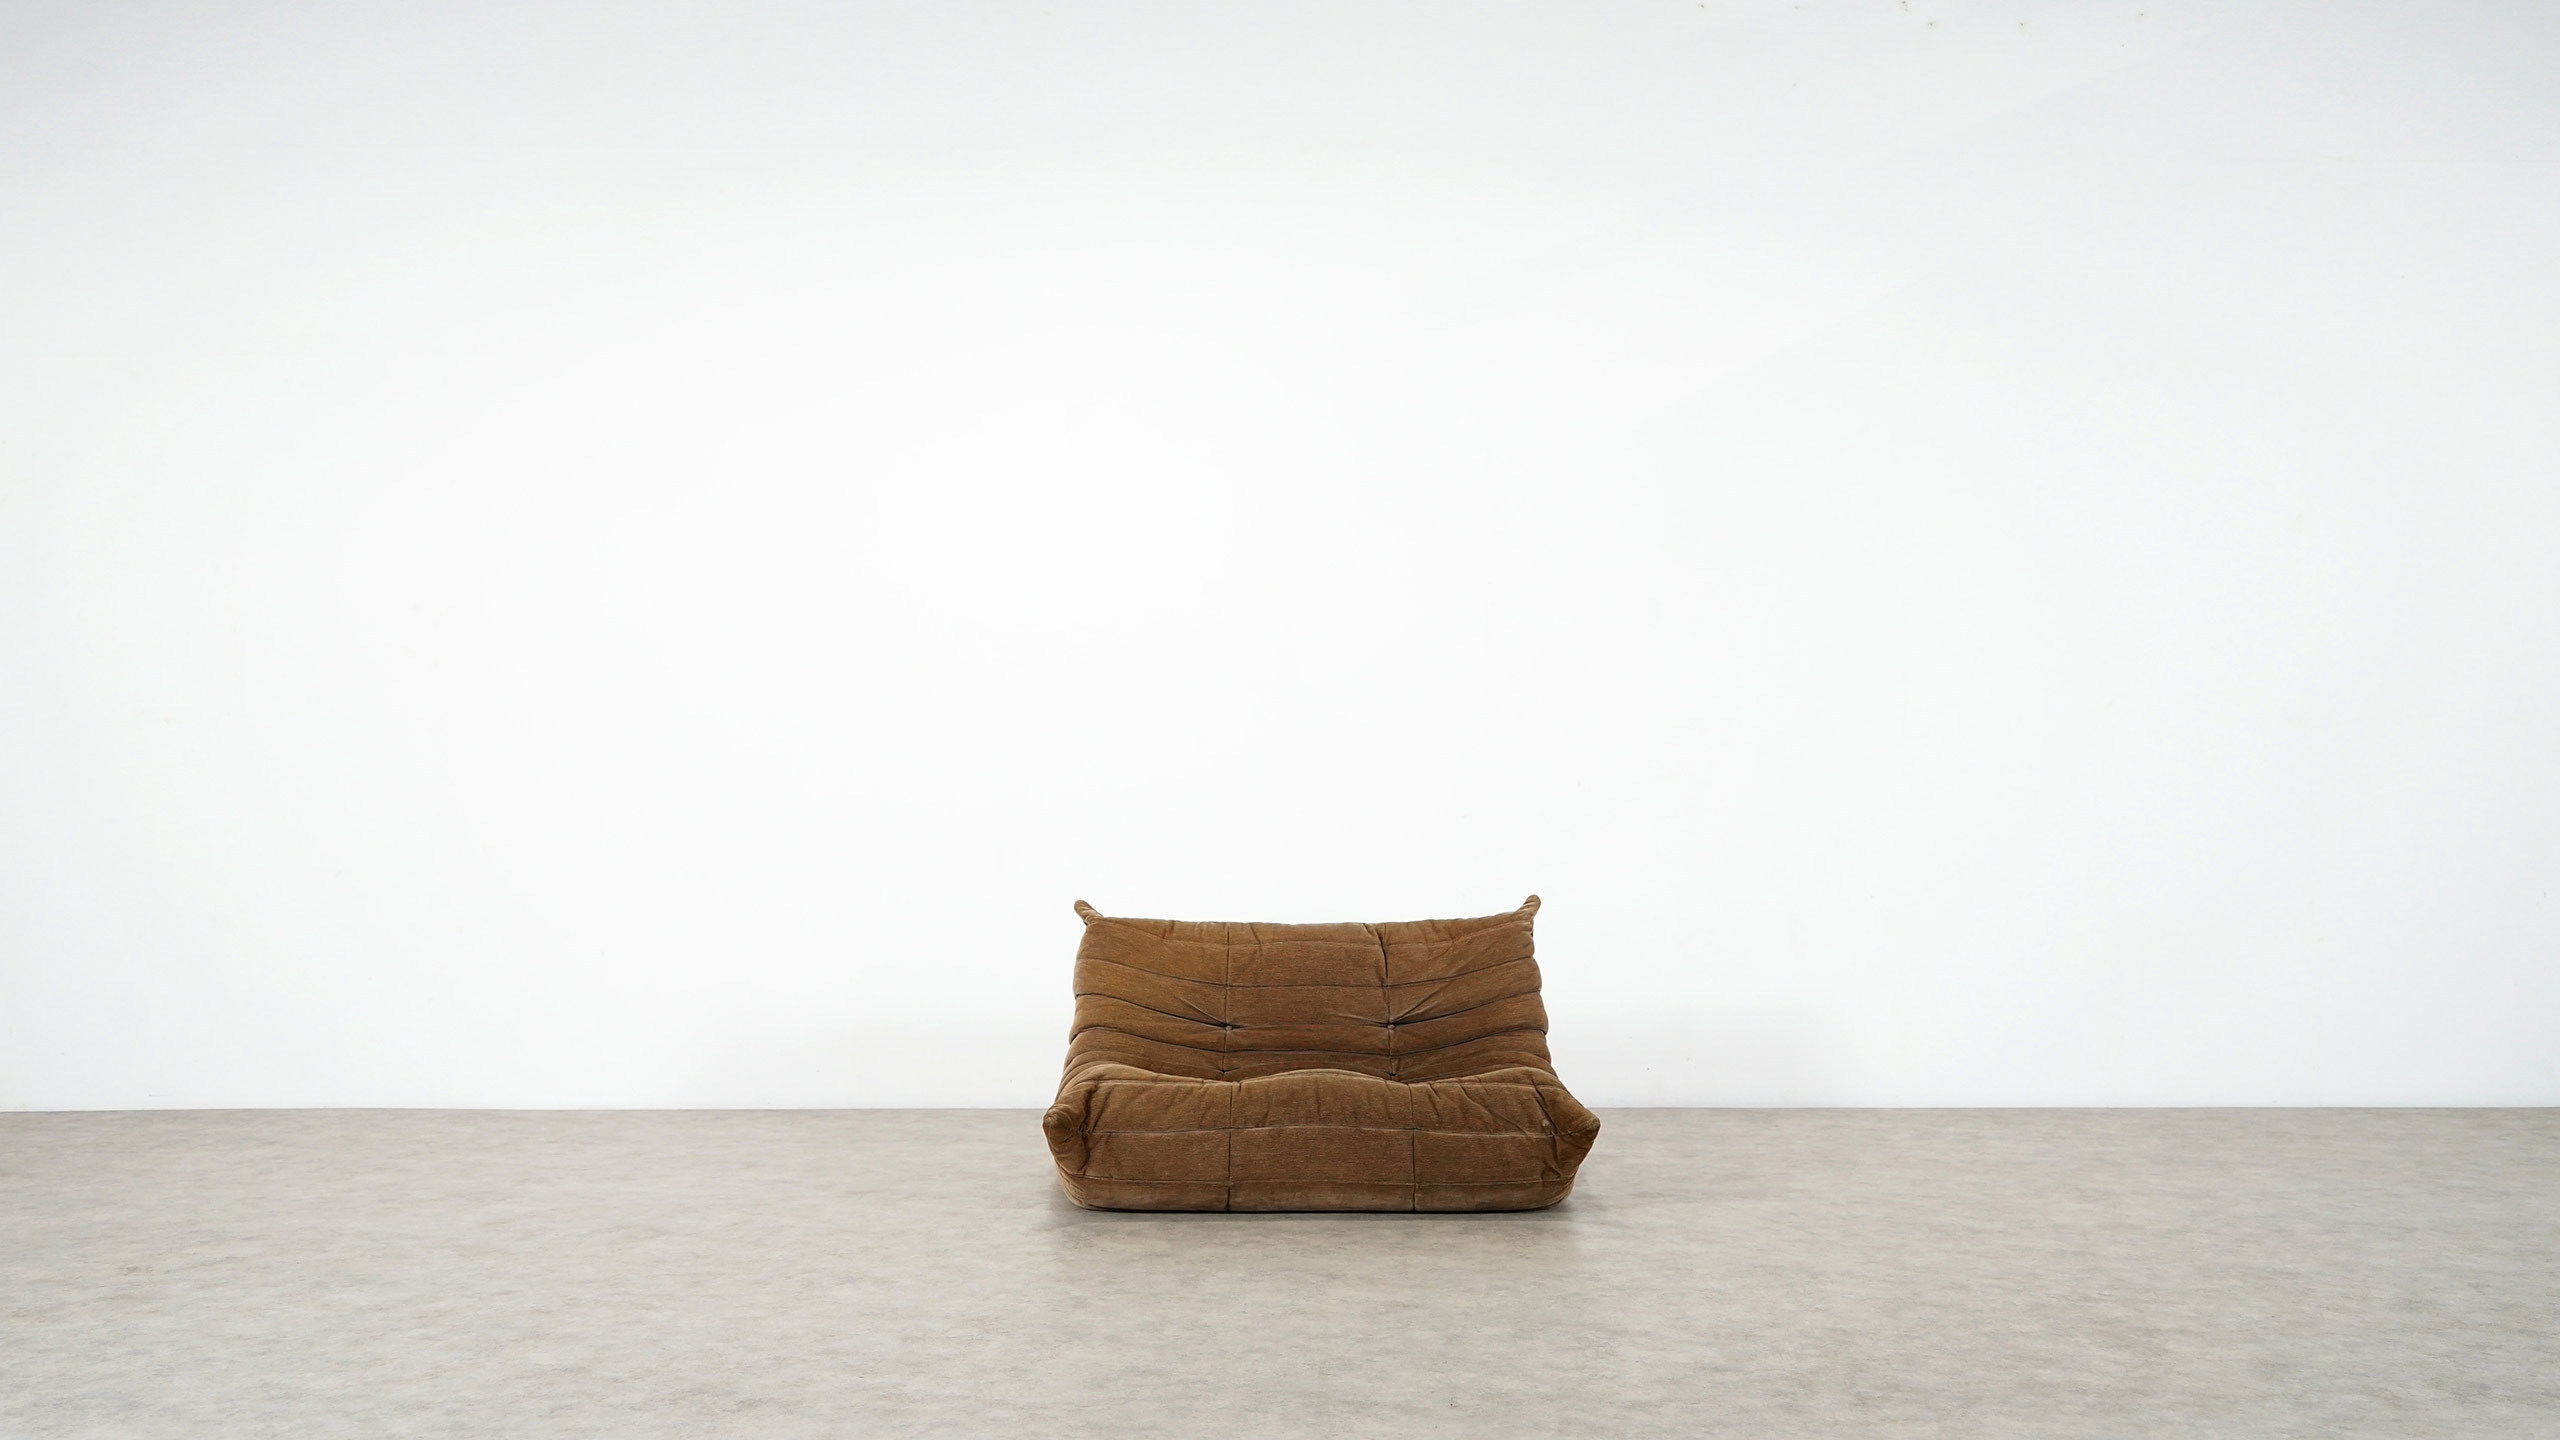 Full Size of Togo Sofa Kaufen Preis Vintage Australia For Sale Copy Uk Replica Reproduction Leather Used Ligne Roset Ireland With Arms Buy Gebraucht By Michel Ducaroy Rolf Sofa Togo Sofa